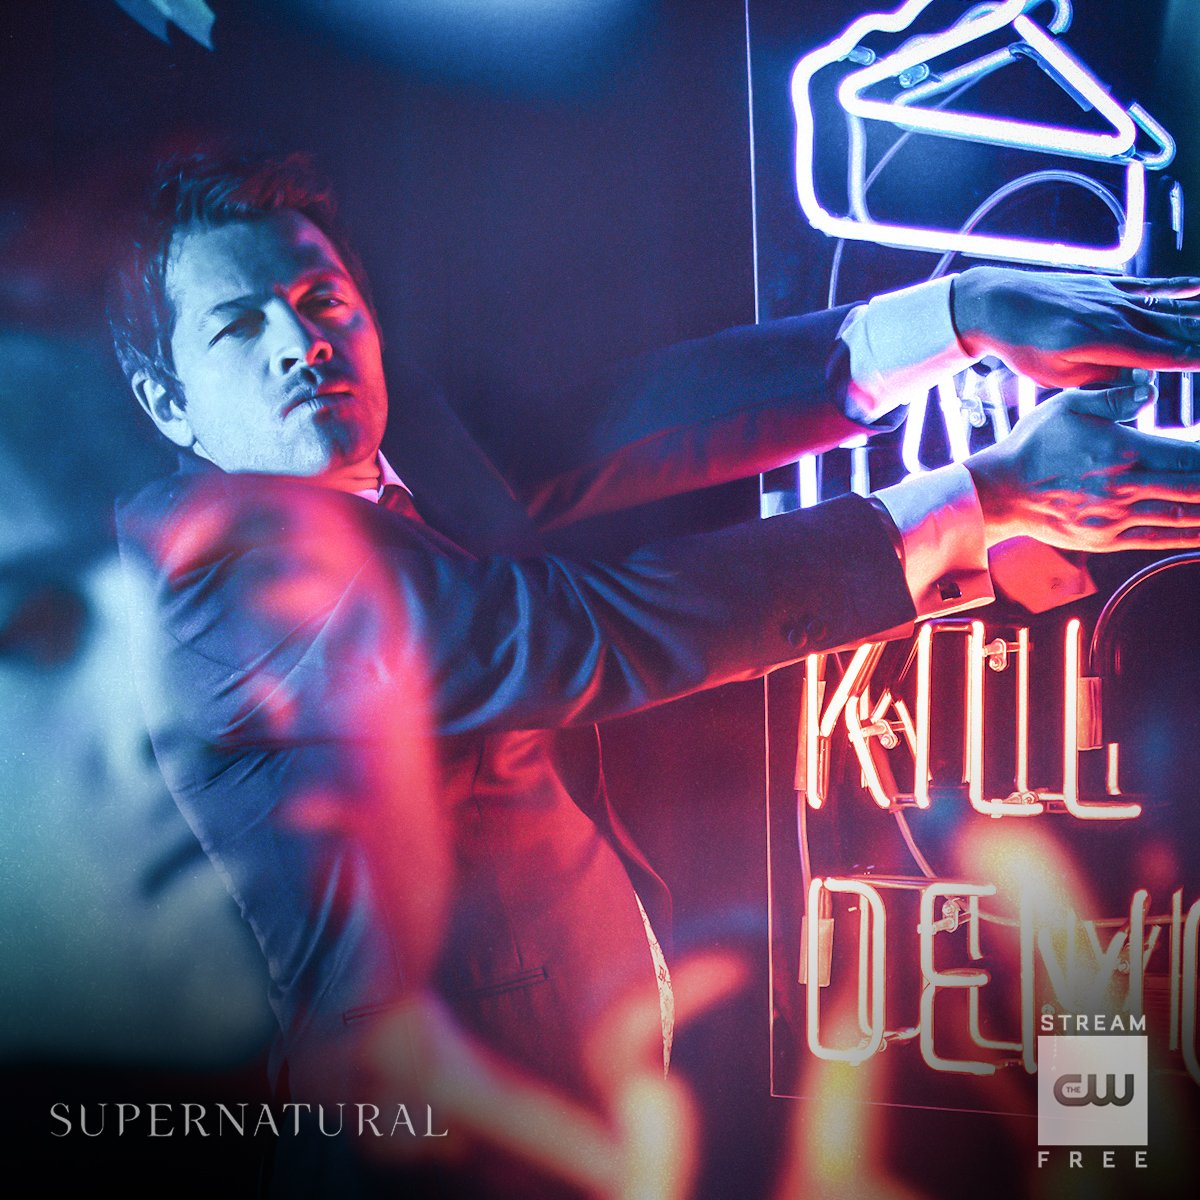 Sent from heaven. Stream the 300th episode of #Supernatural NOW: https://t.co/ZCIZSAIXTe #SPN300 https://t.co/PrieLkWgfO